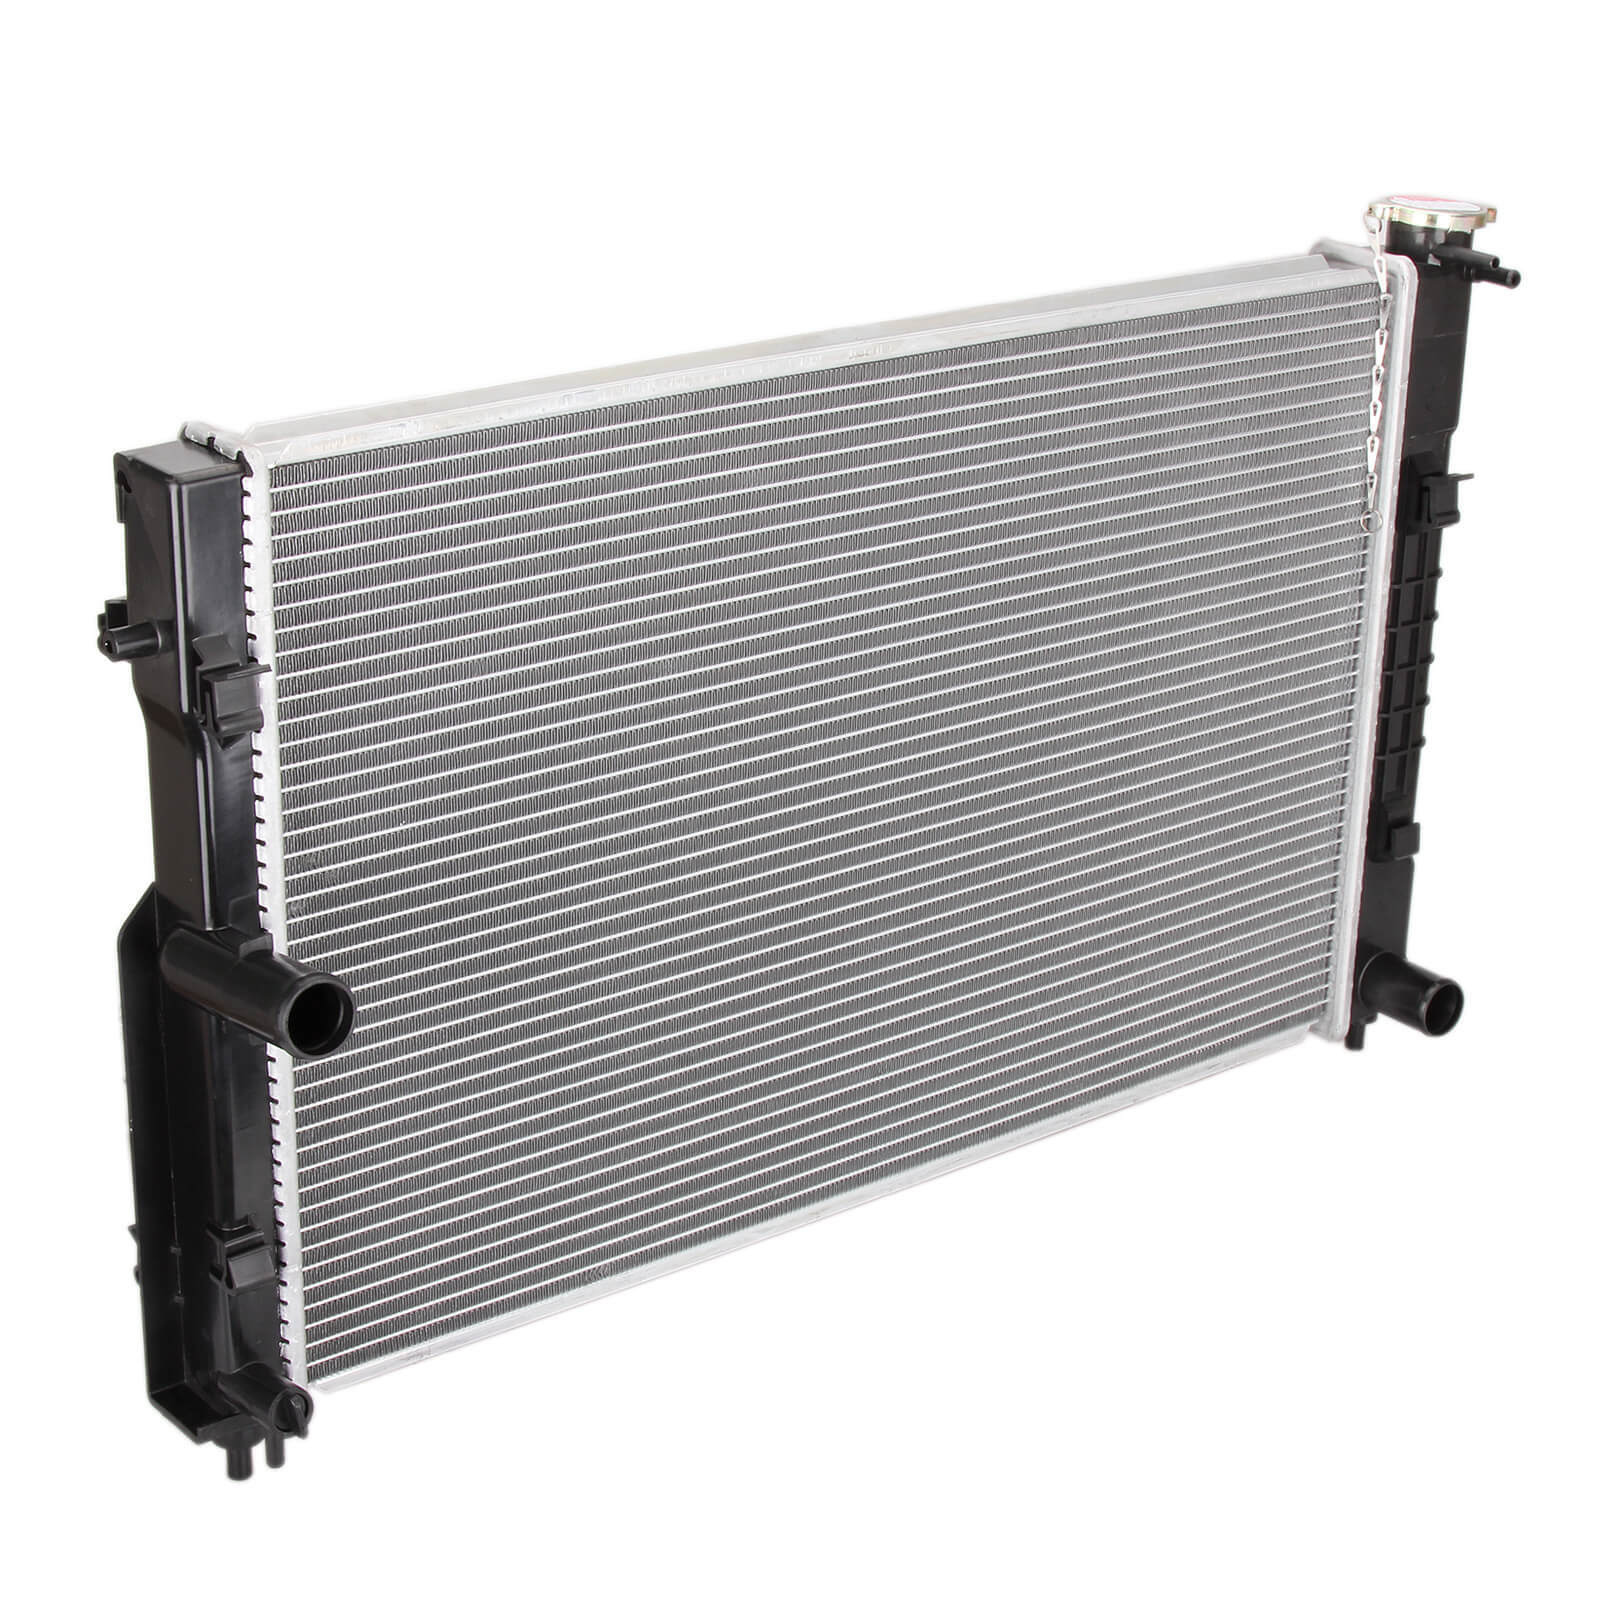 Dromedary-Professional Holden Vz Radiator Fit Commodore Sv8sshsv 57 Ls1 60 Ls2-1